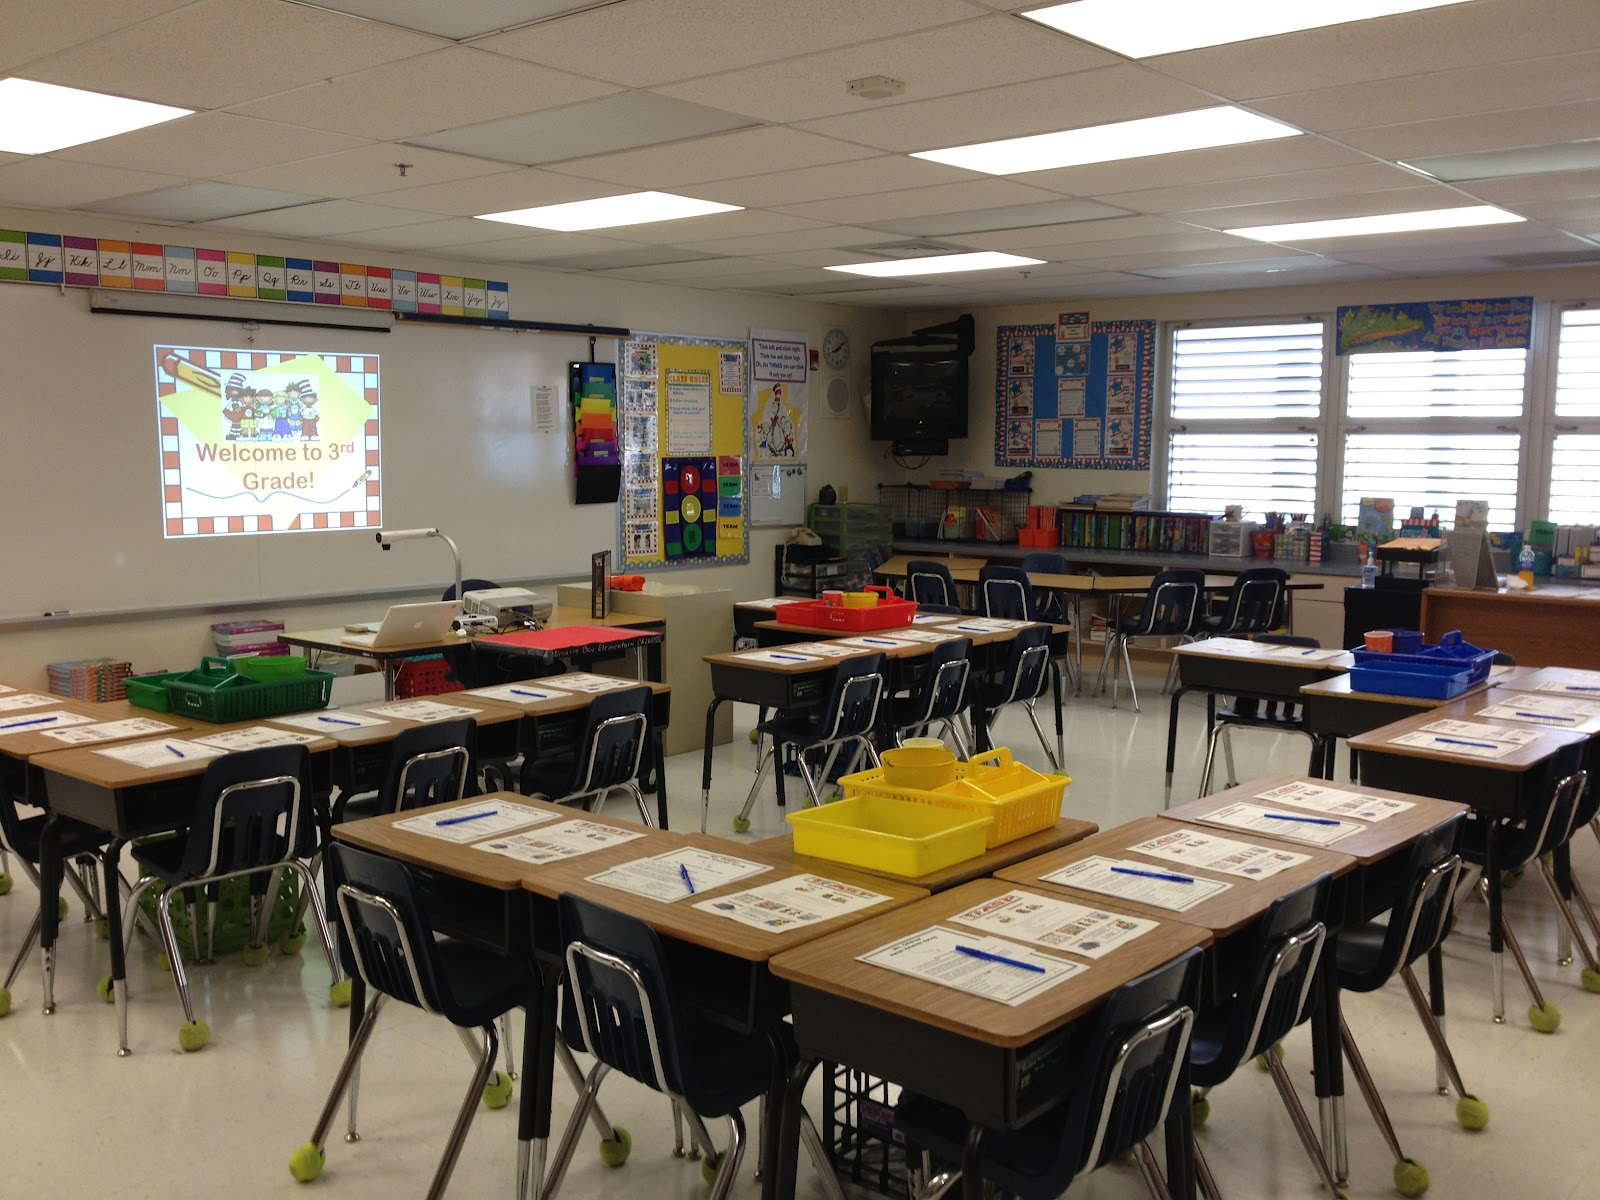 Ideas In Classroom ~ Th grade classroom setup ideas amazing tips tricks